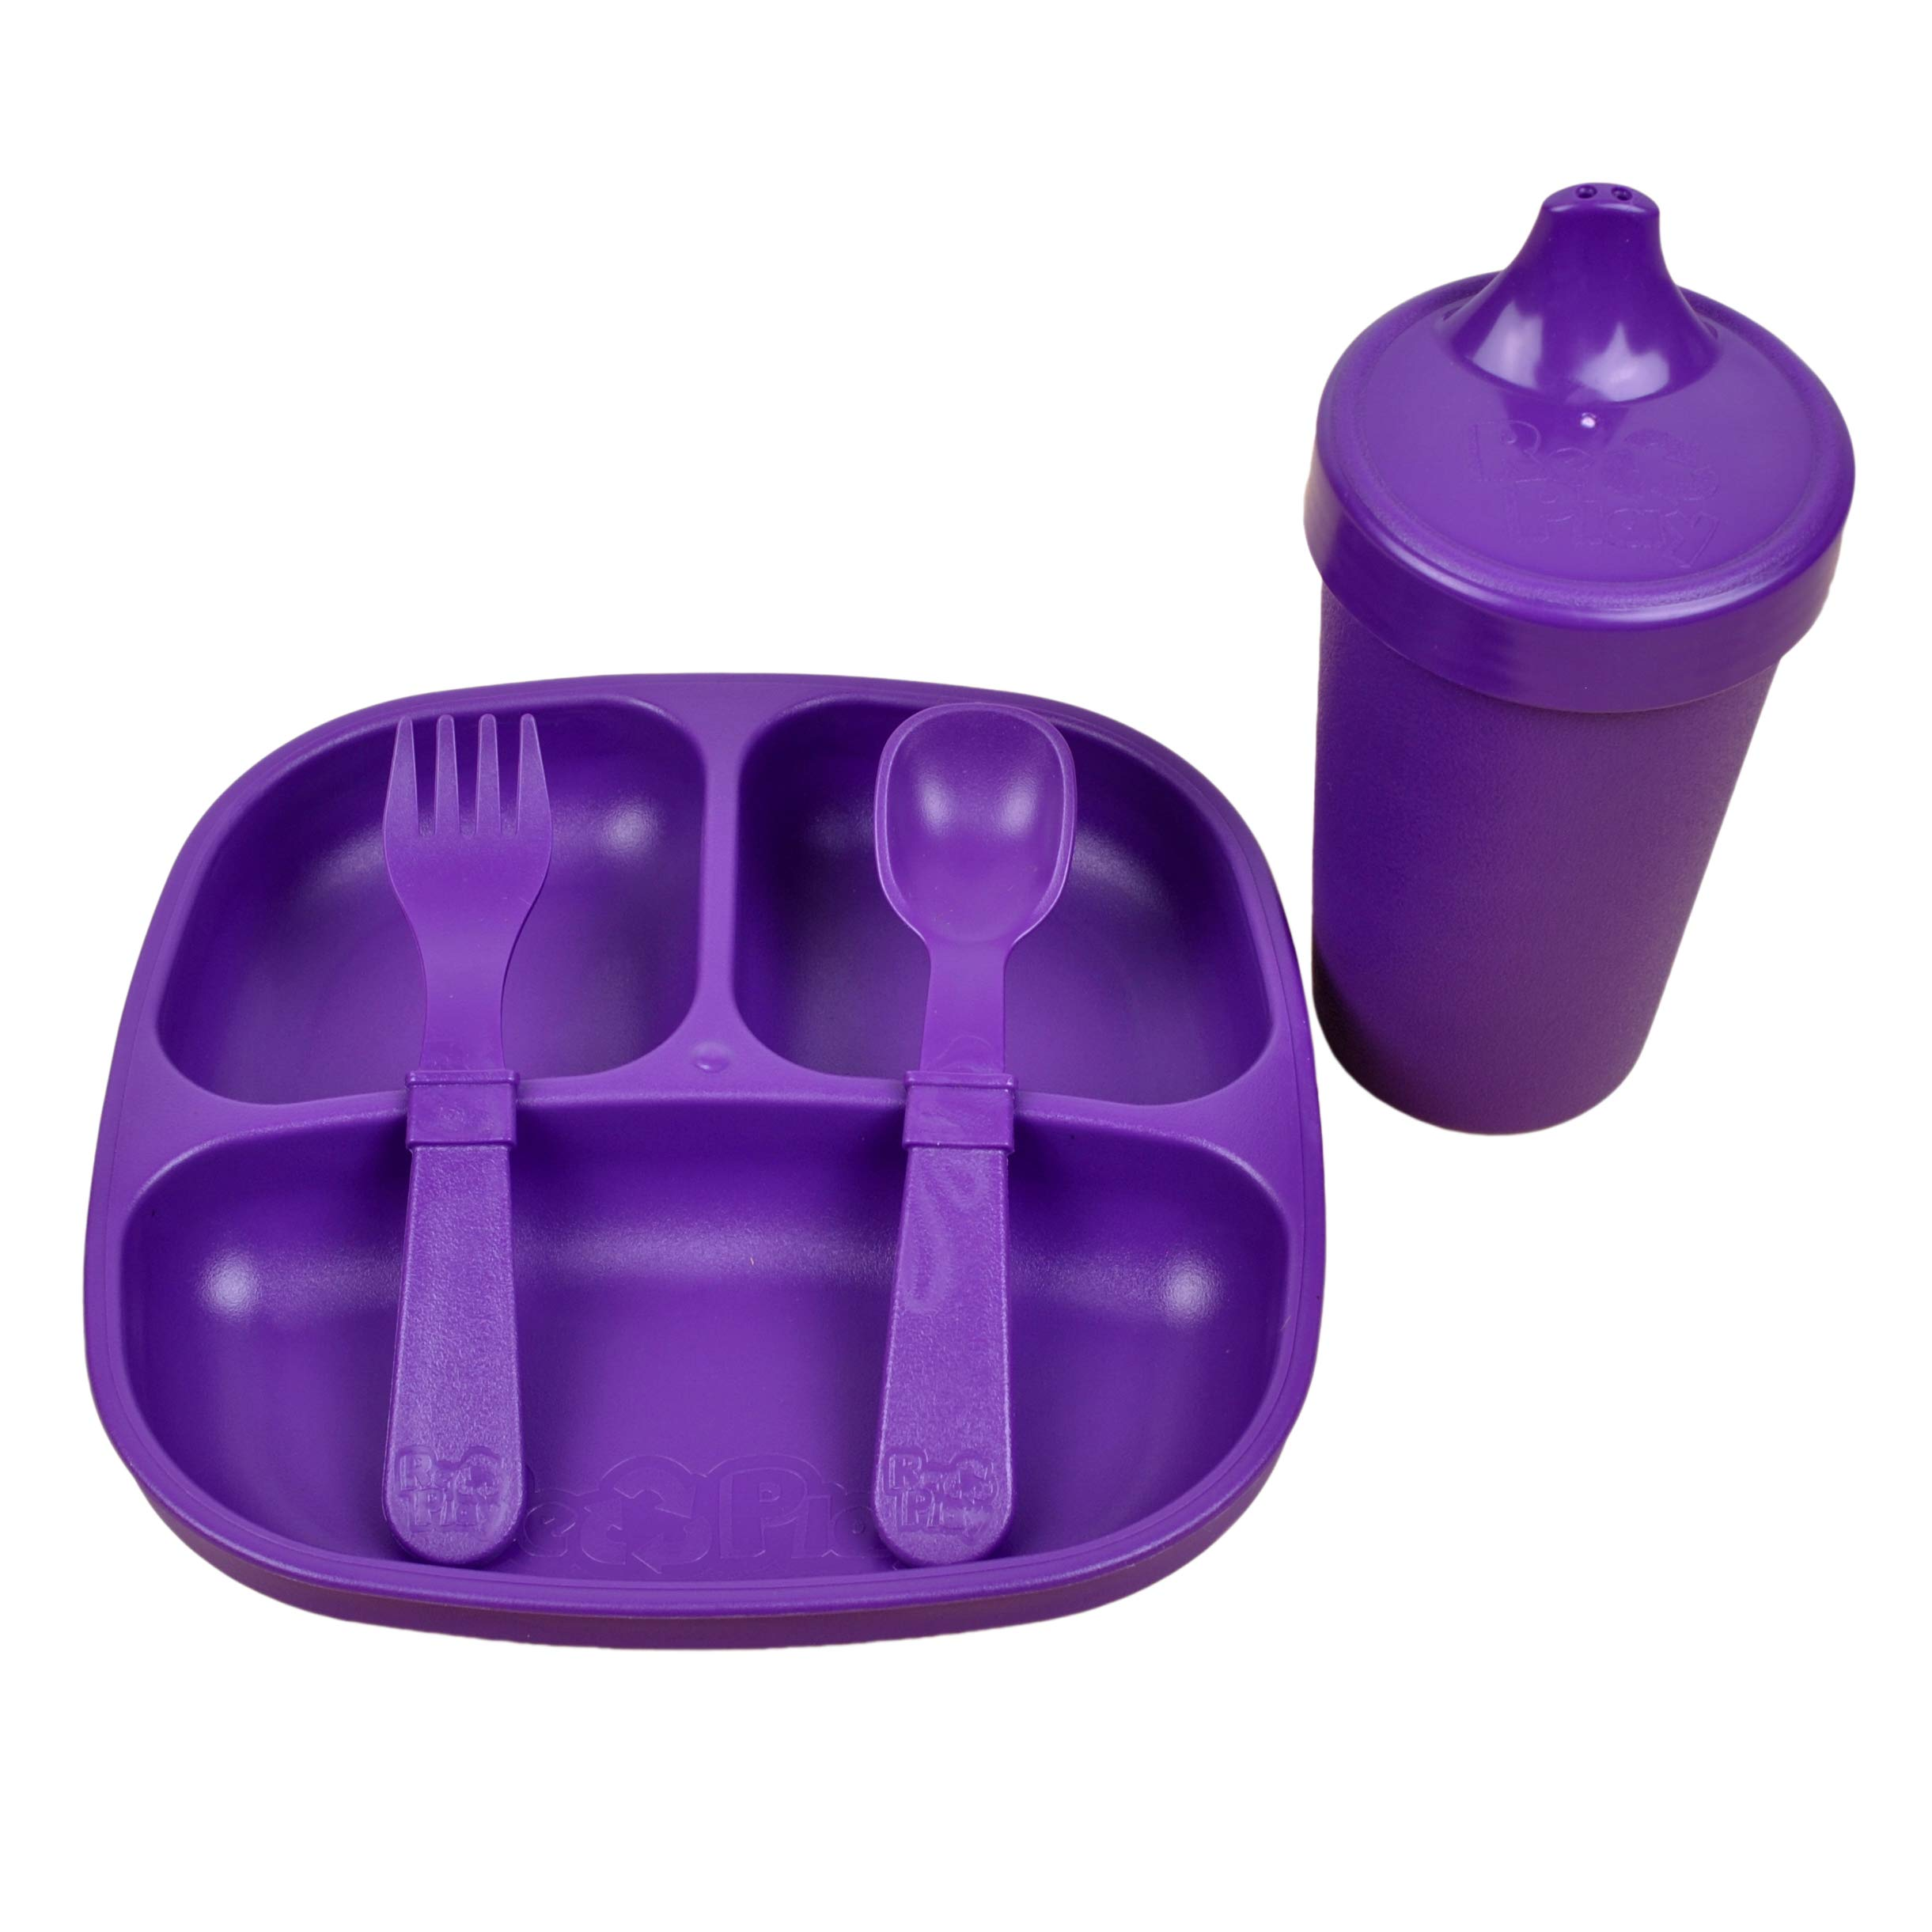 Re-Play Made in The USA Toddler Diner Set | Divided Plate, No Spill Sippy Cup, Utensil Set | Eco Friendly Heavyweight Recycled Milk Jugs - Virtually Indestructible | Amethyst